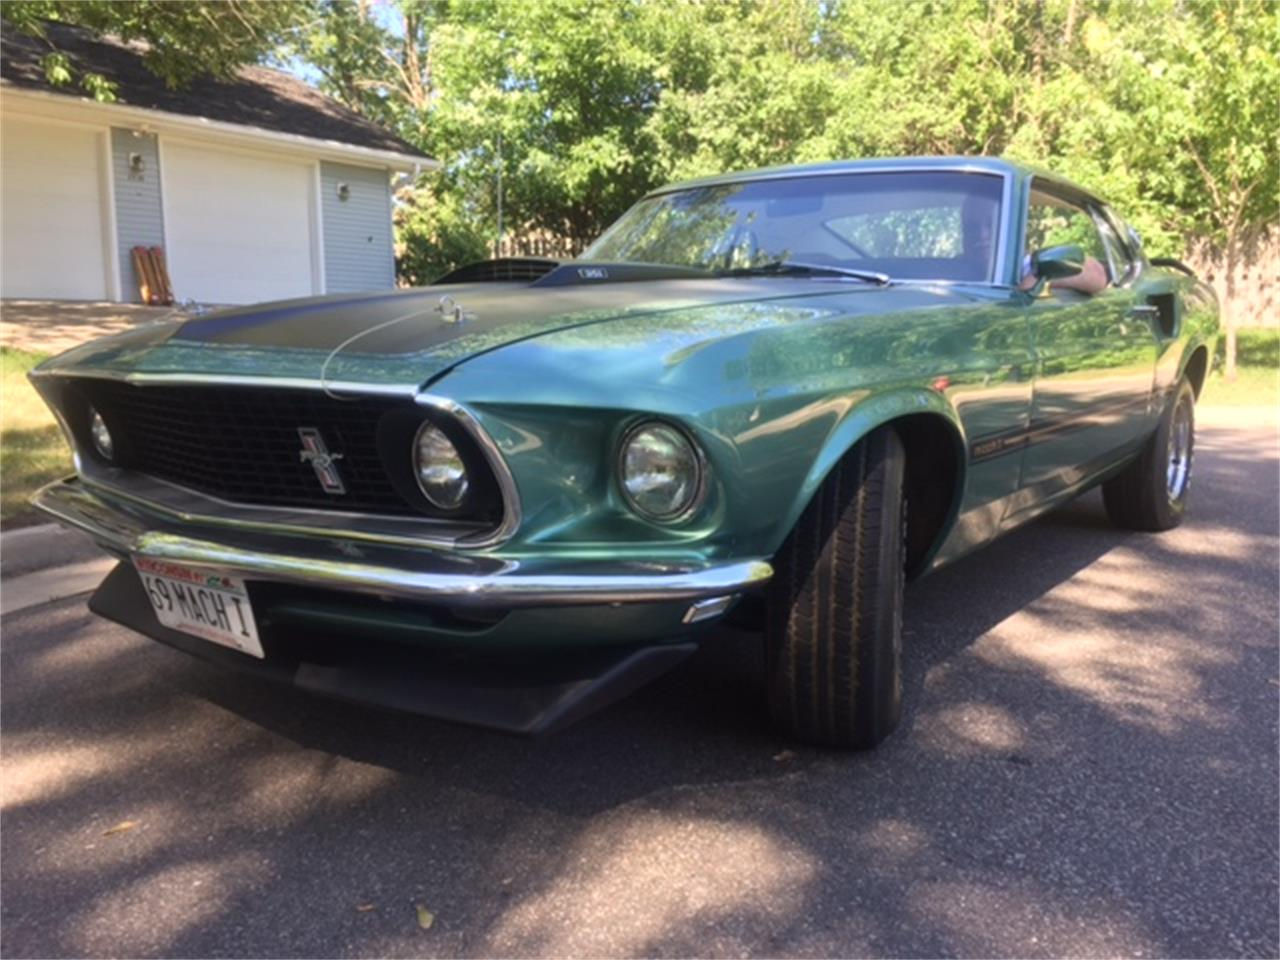 1969 Ford Mustang Mach 1 for sale in WESTON, WI